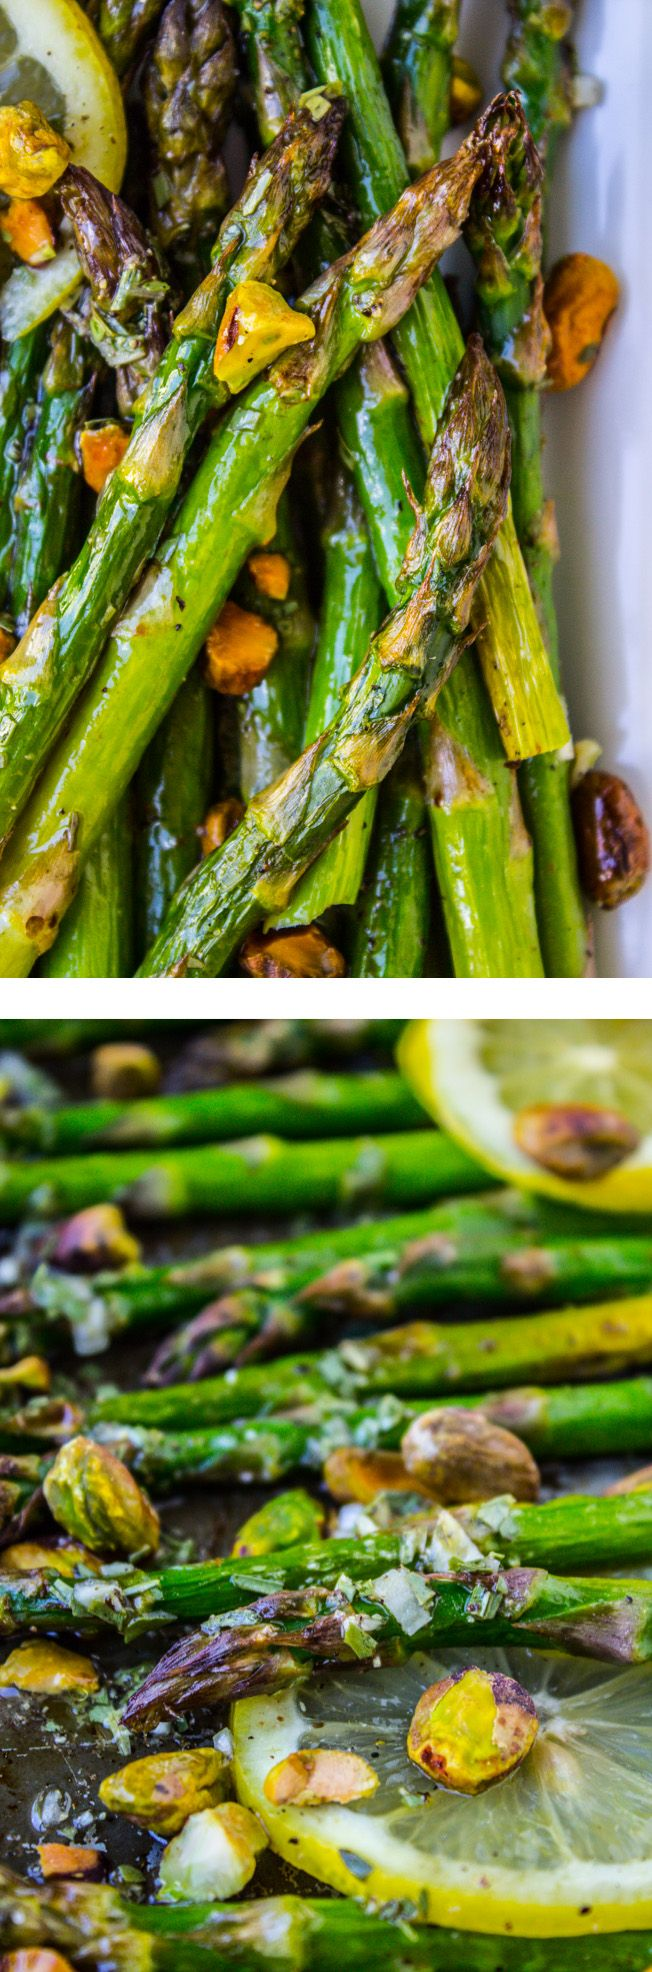 Lemon Asparagus with Pistachios from The Food Charlatan // This easy yet impressive side dish would be perfect for Easter! 15 minutes, tops.